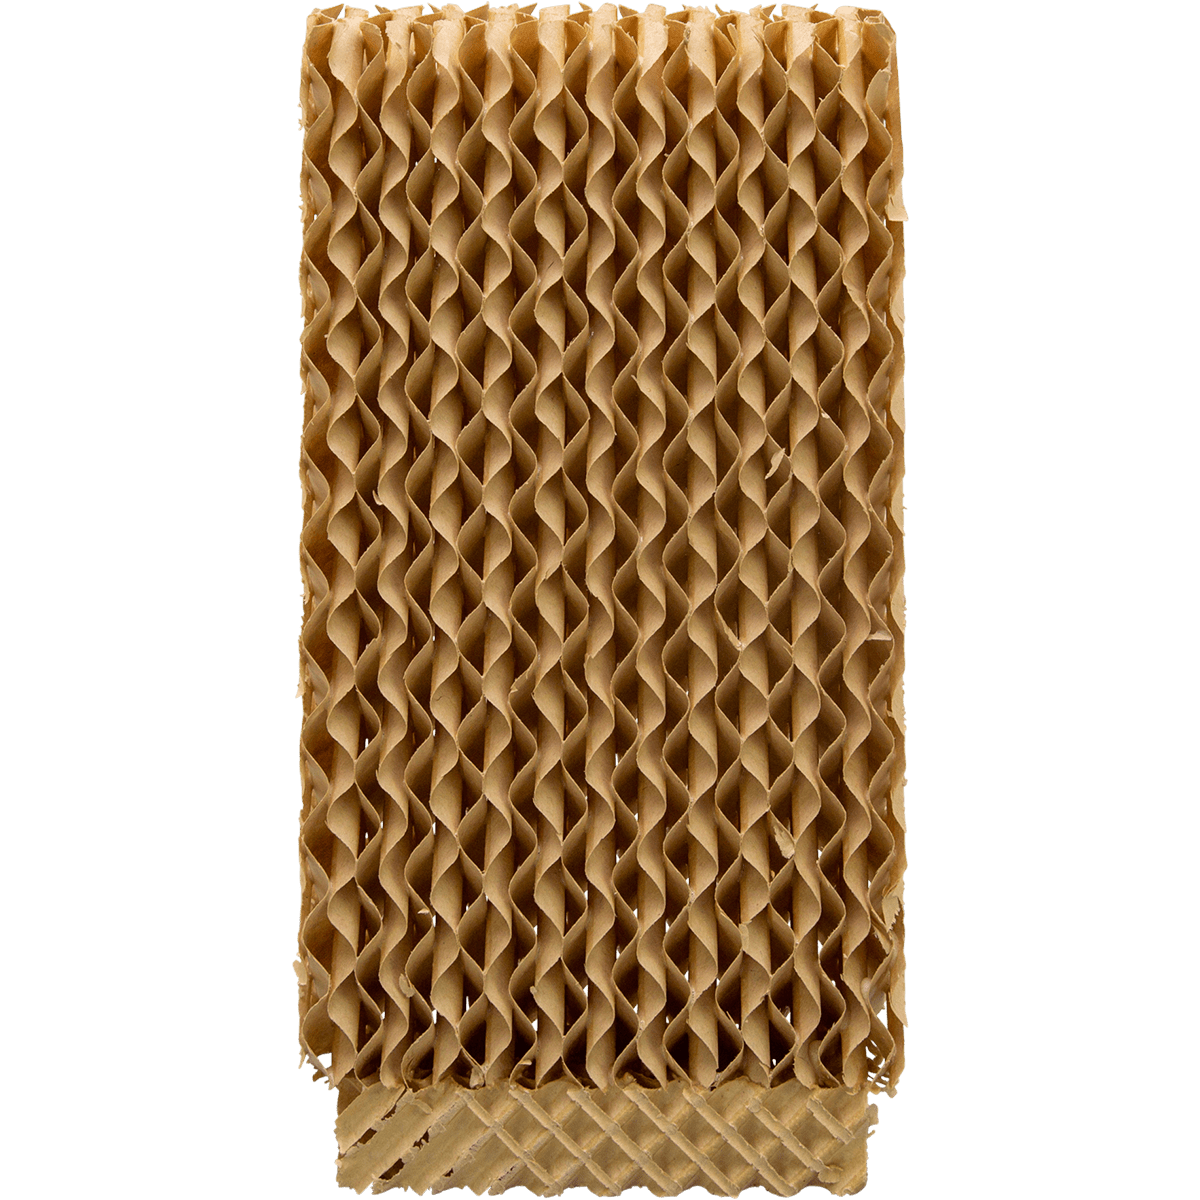 Honeywell Replacement Cooling Pad For Tc09peu Evaporative Cooler Sylvane